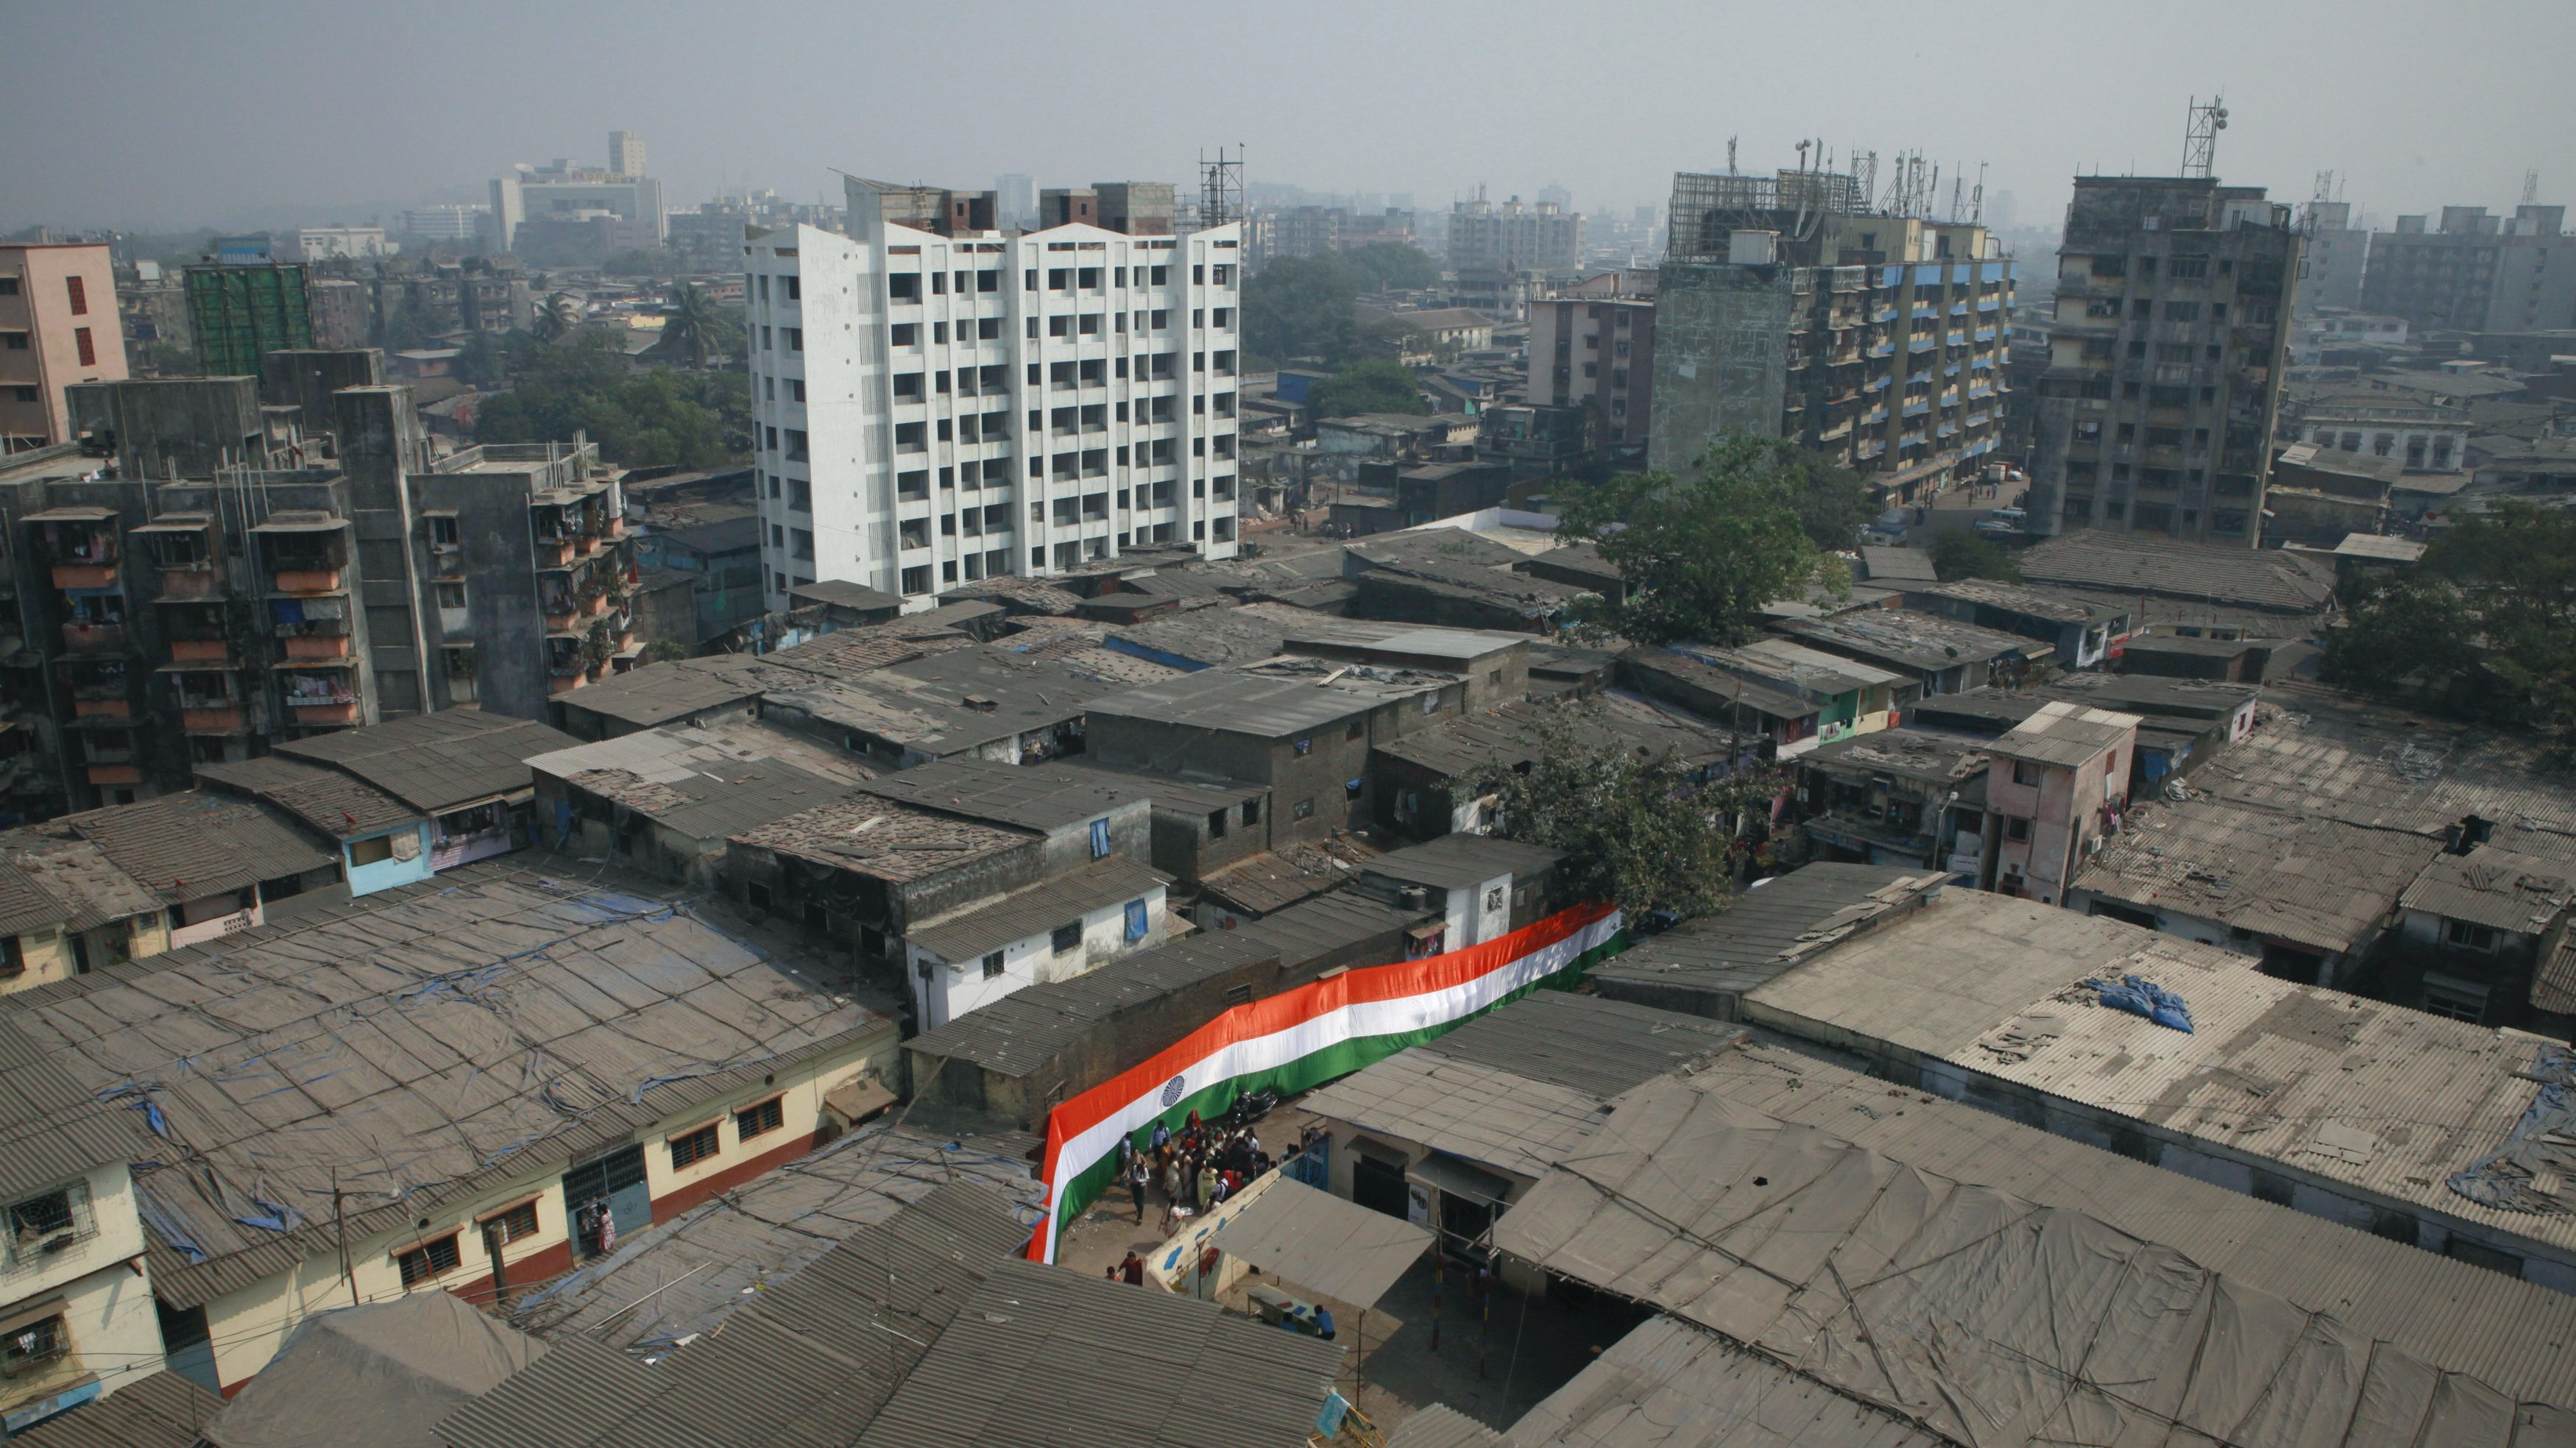 A Indian national flag is pictured in a street in Dharavi one of Asia's largest slums in Mumbai